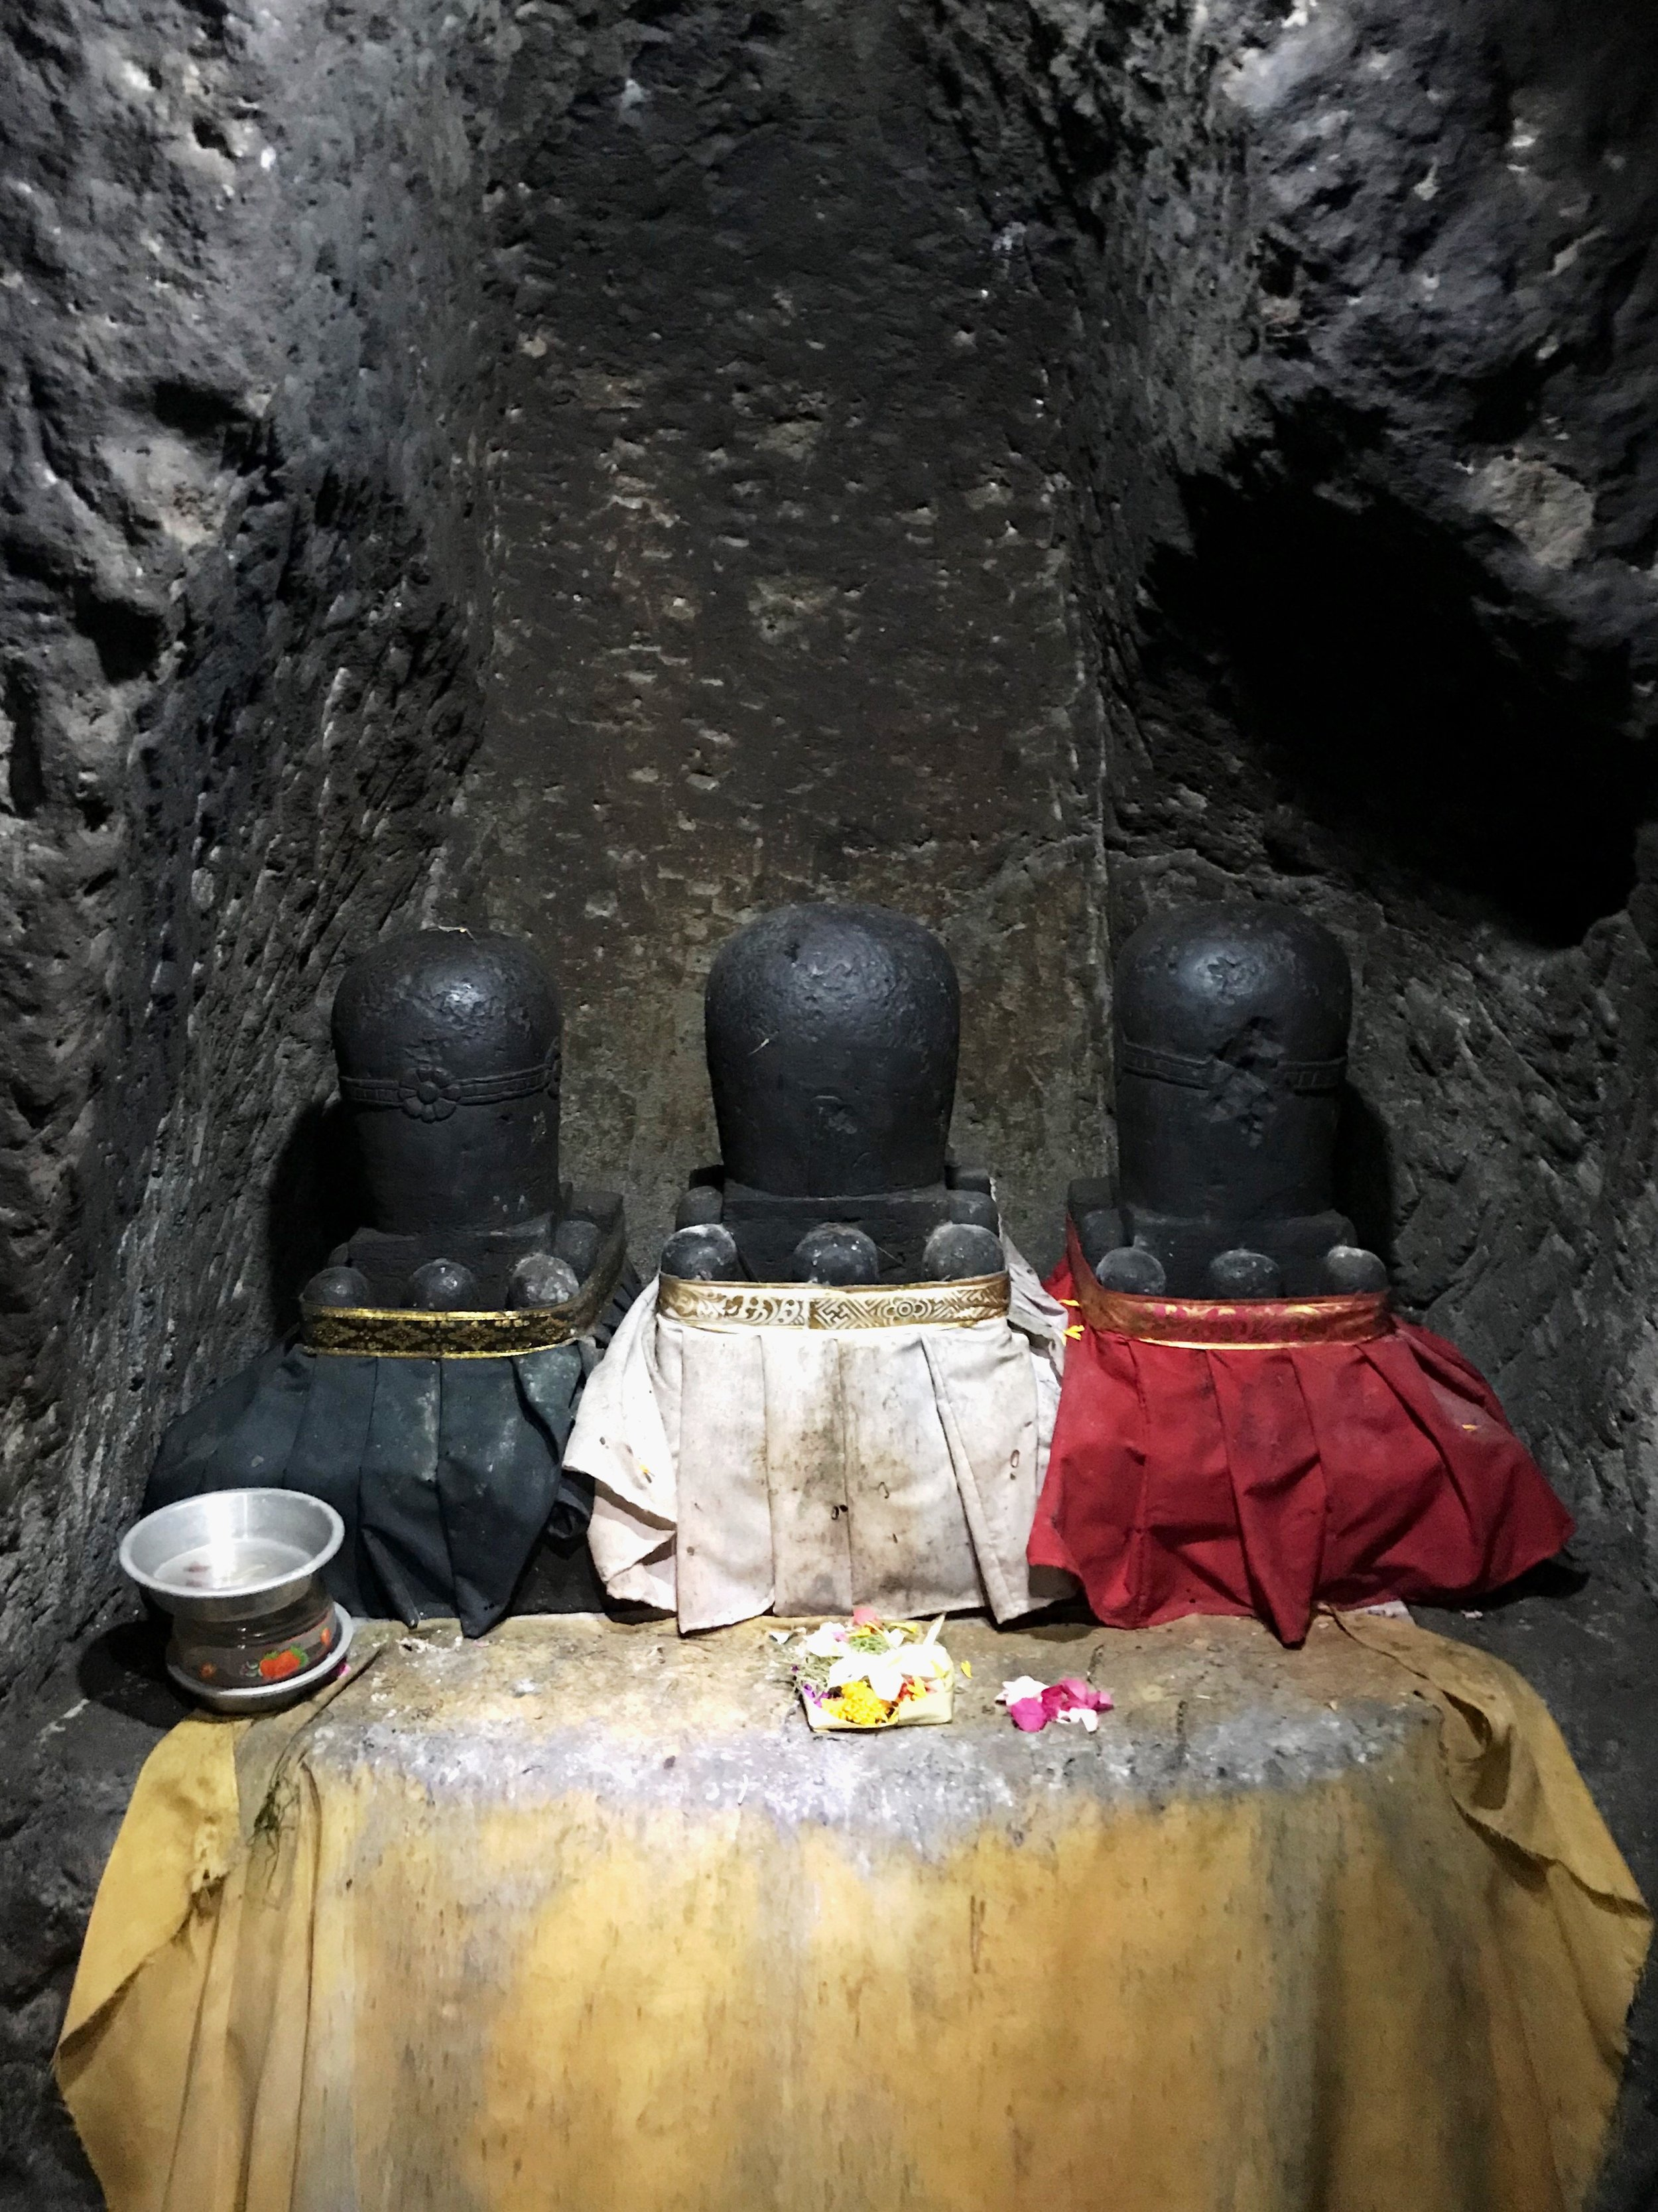 Inside the cave are three phallic linga in honor of the Hindu deity Shiva the Destroyer